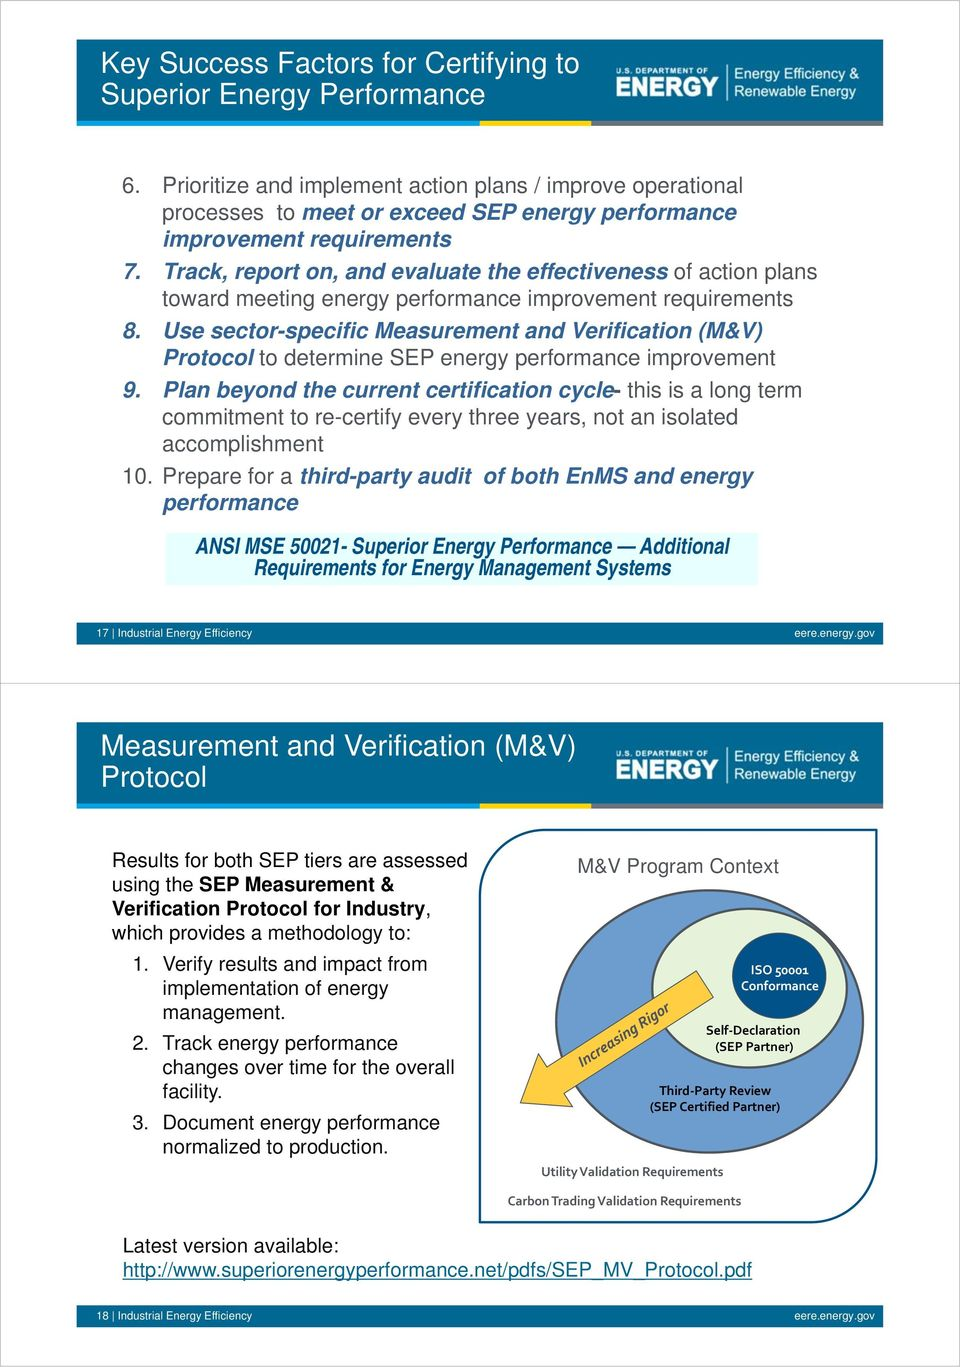 Use sector-specific Measurement and Verification (M&V) Protocol to determine SEP energy performance improvement 9.